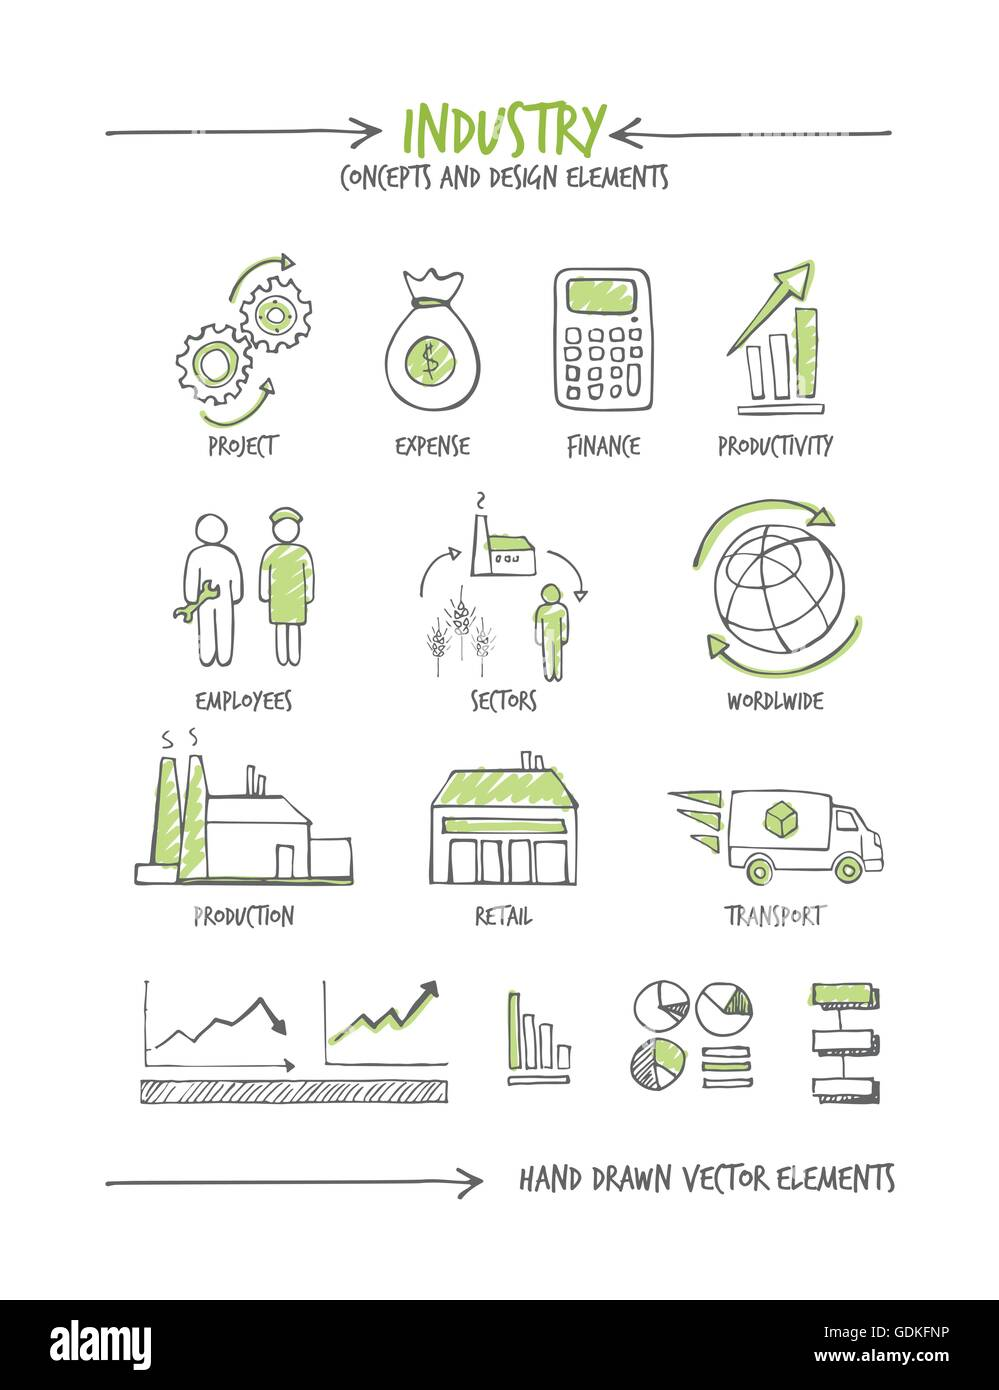 Industry and business hand drawn sketched concepts - Stock Image